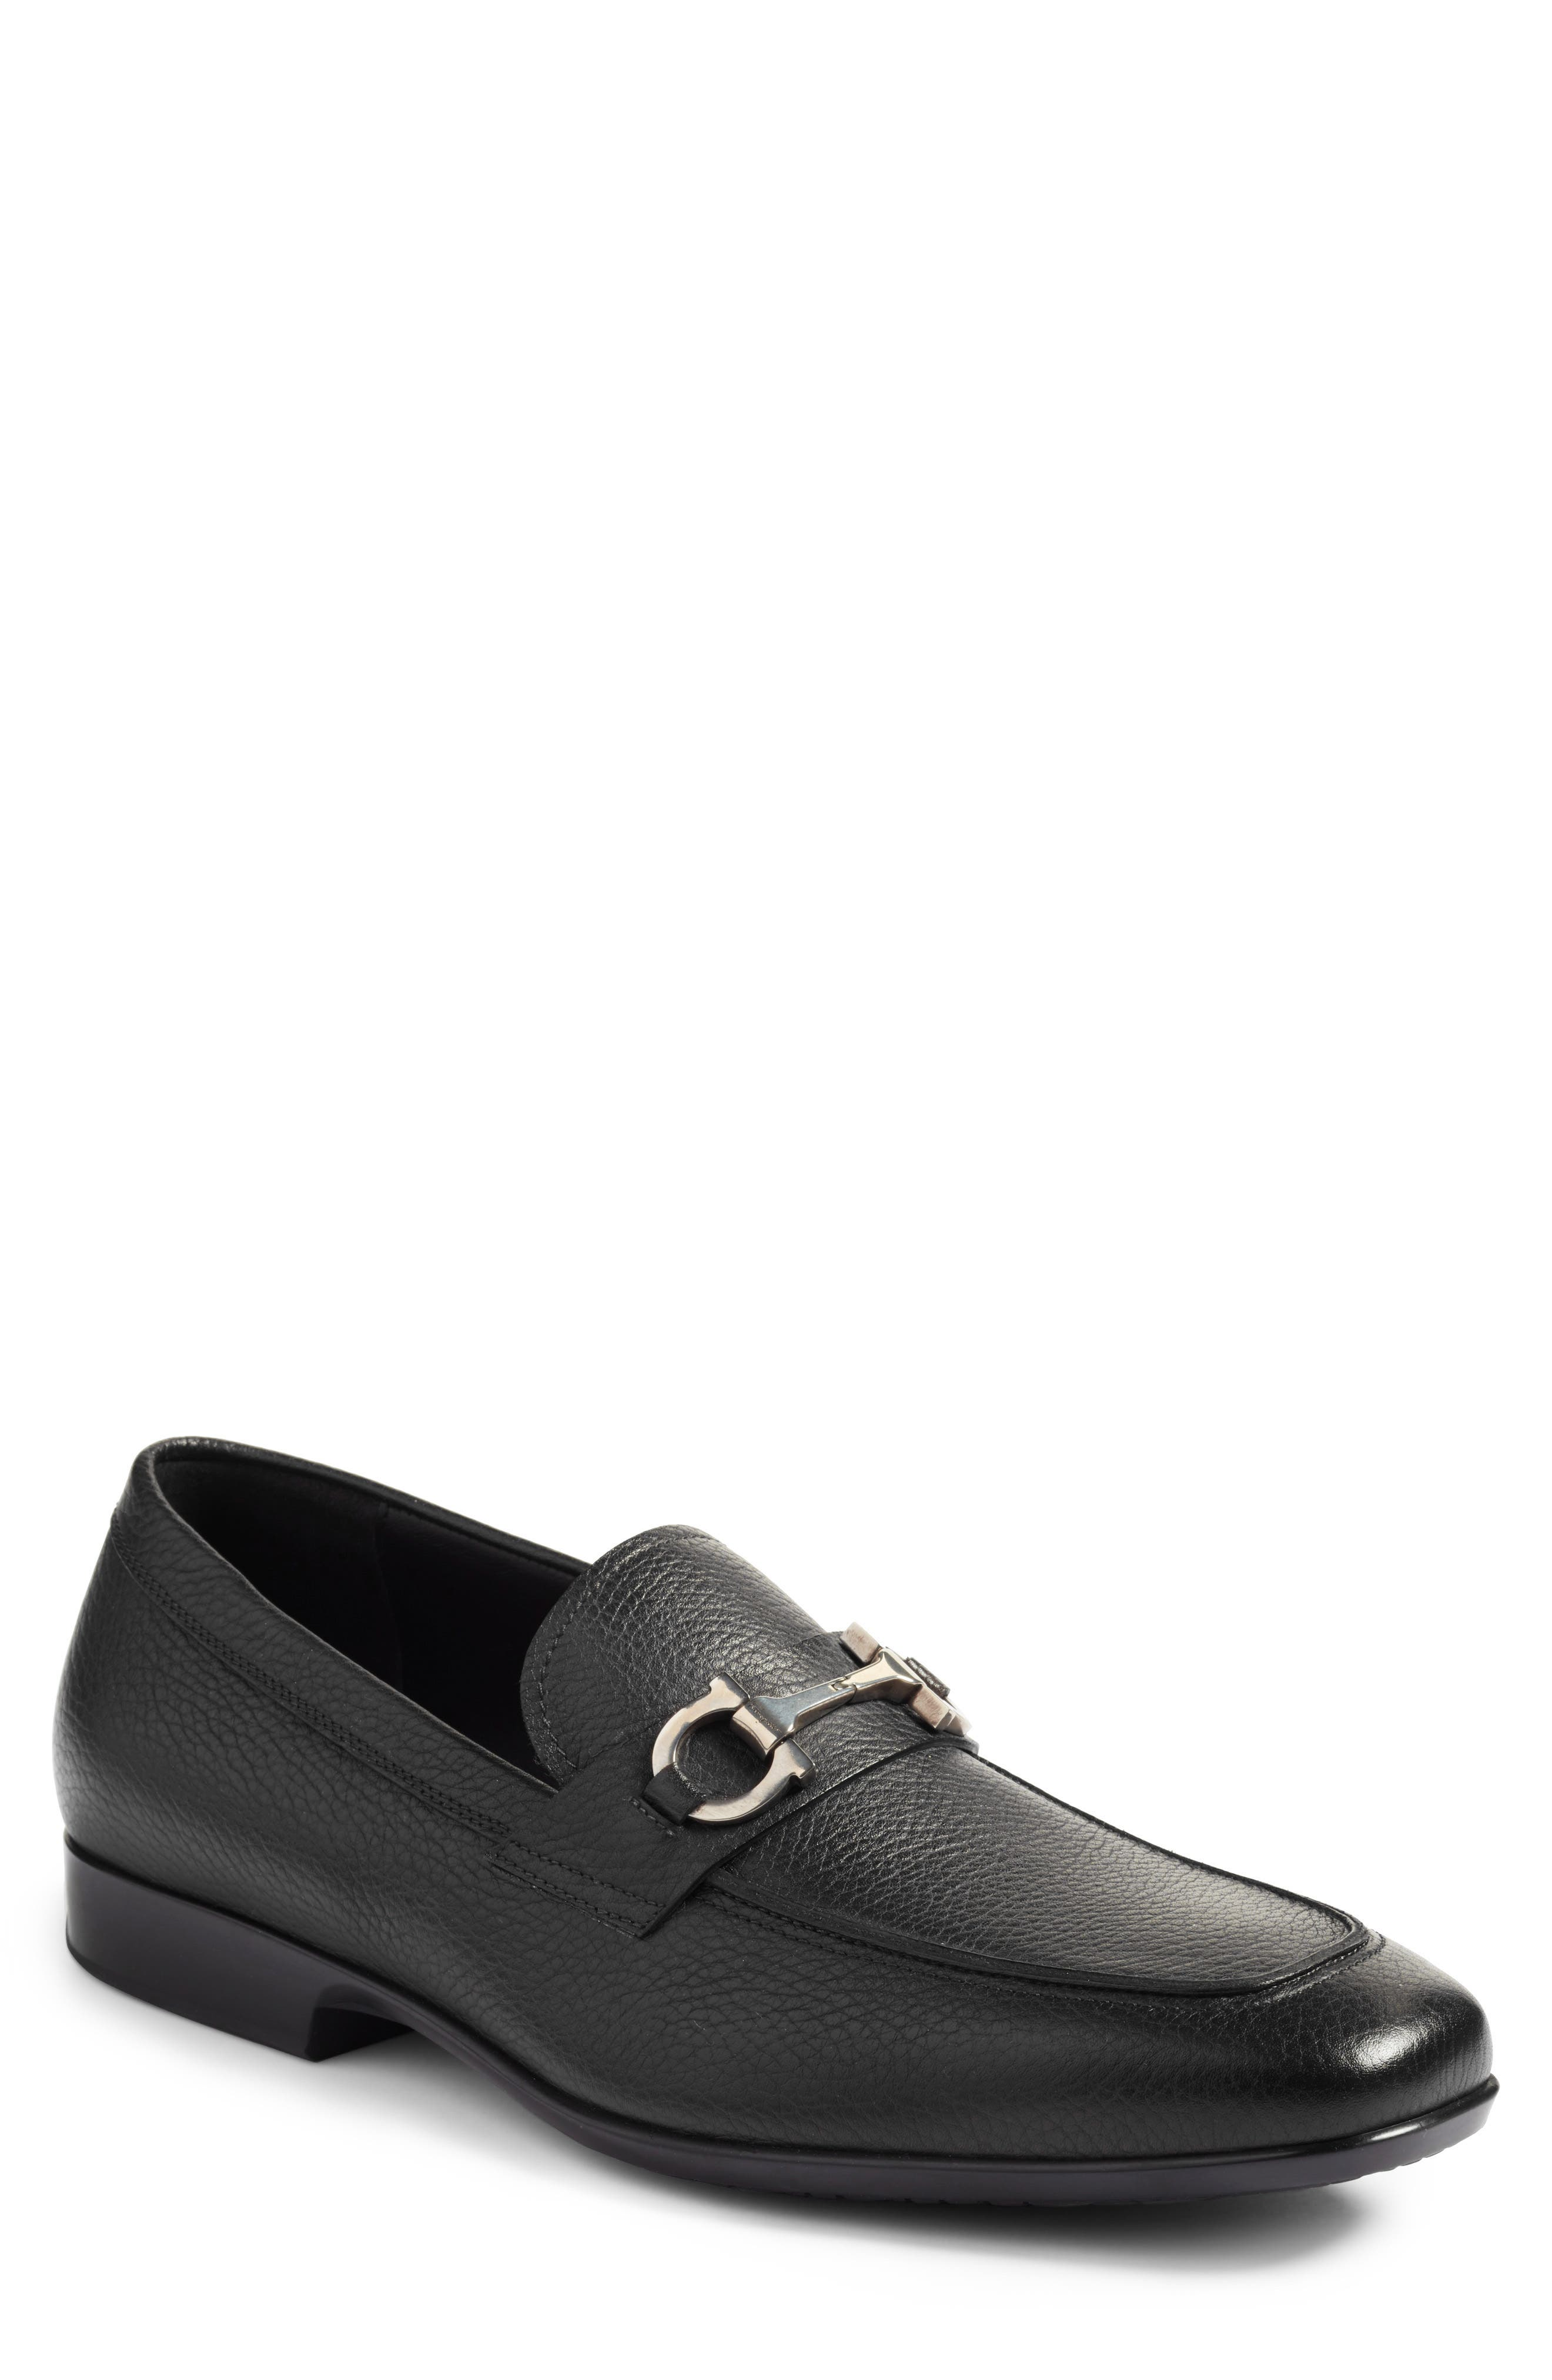 Bit Loafer,                             Main thumbnail 1, color,                             001